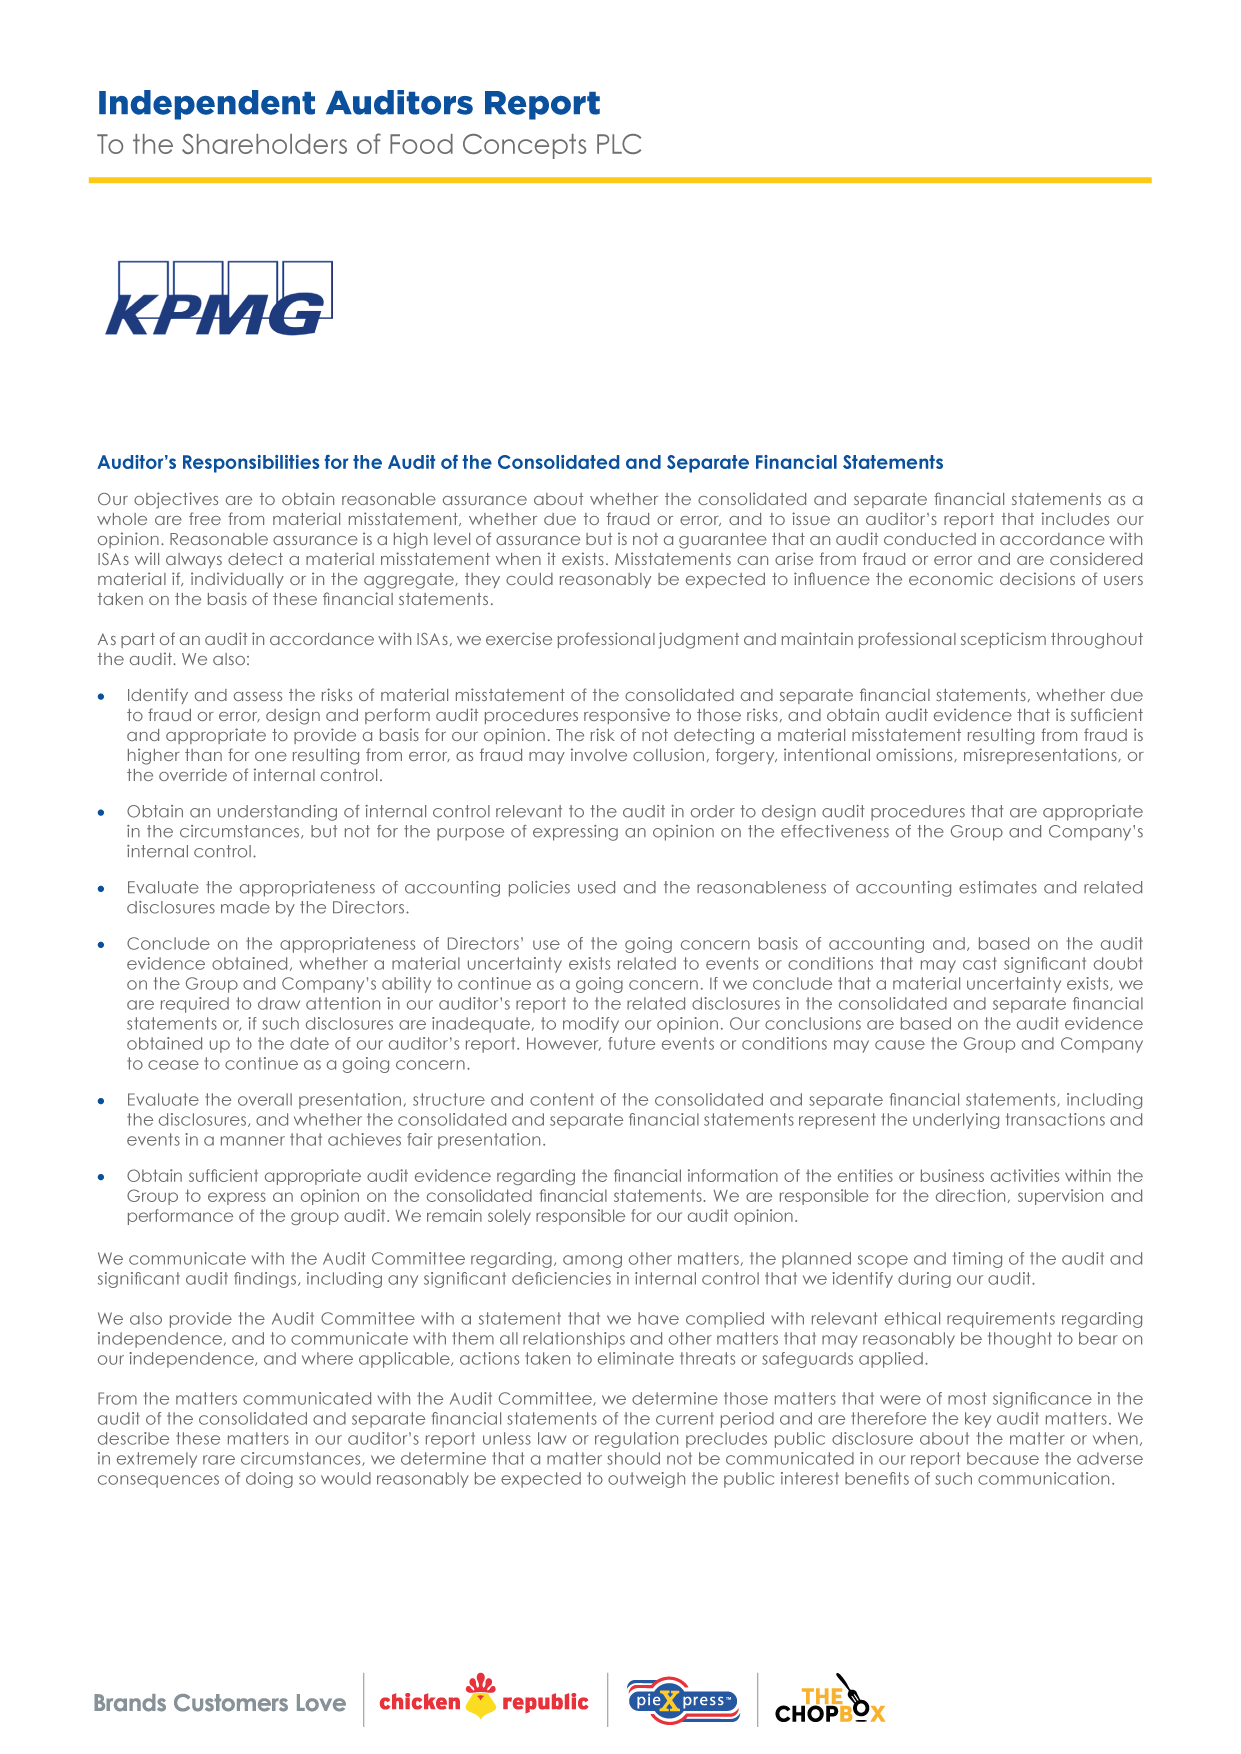 Food Concepts - Independent Auditors Report - Page 4